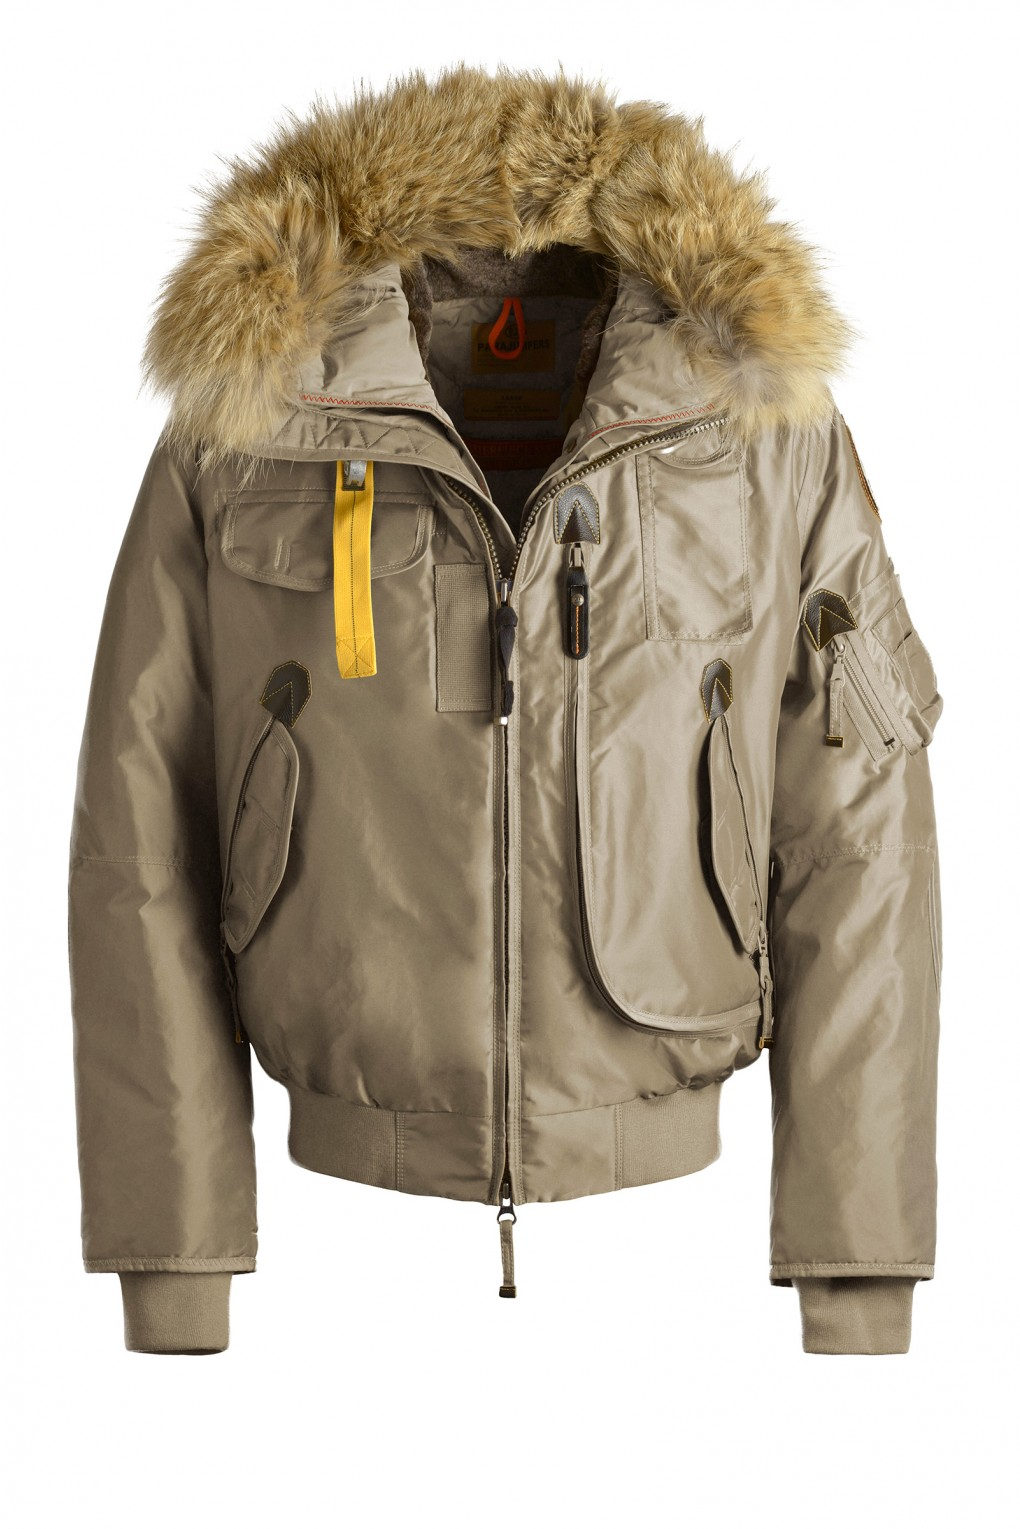 parajumpers GOBI man outerwear Cappuccino